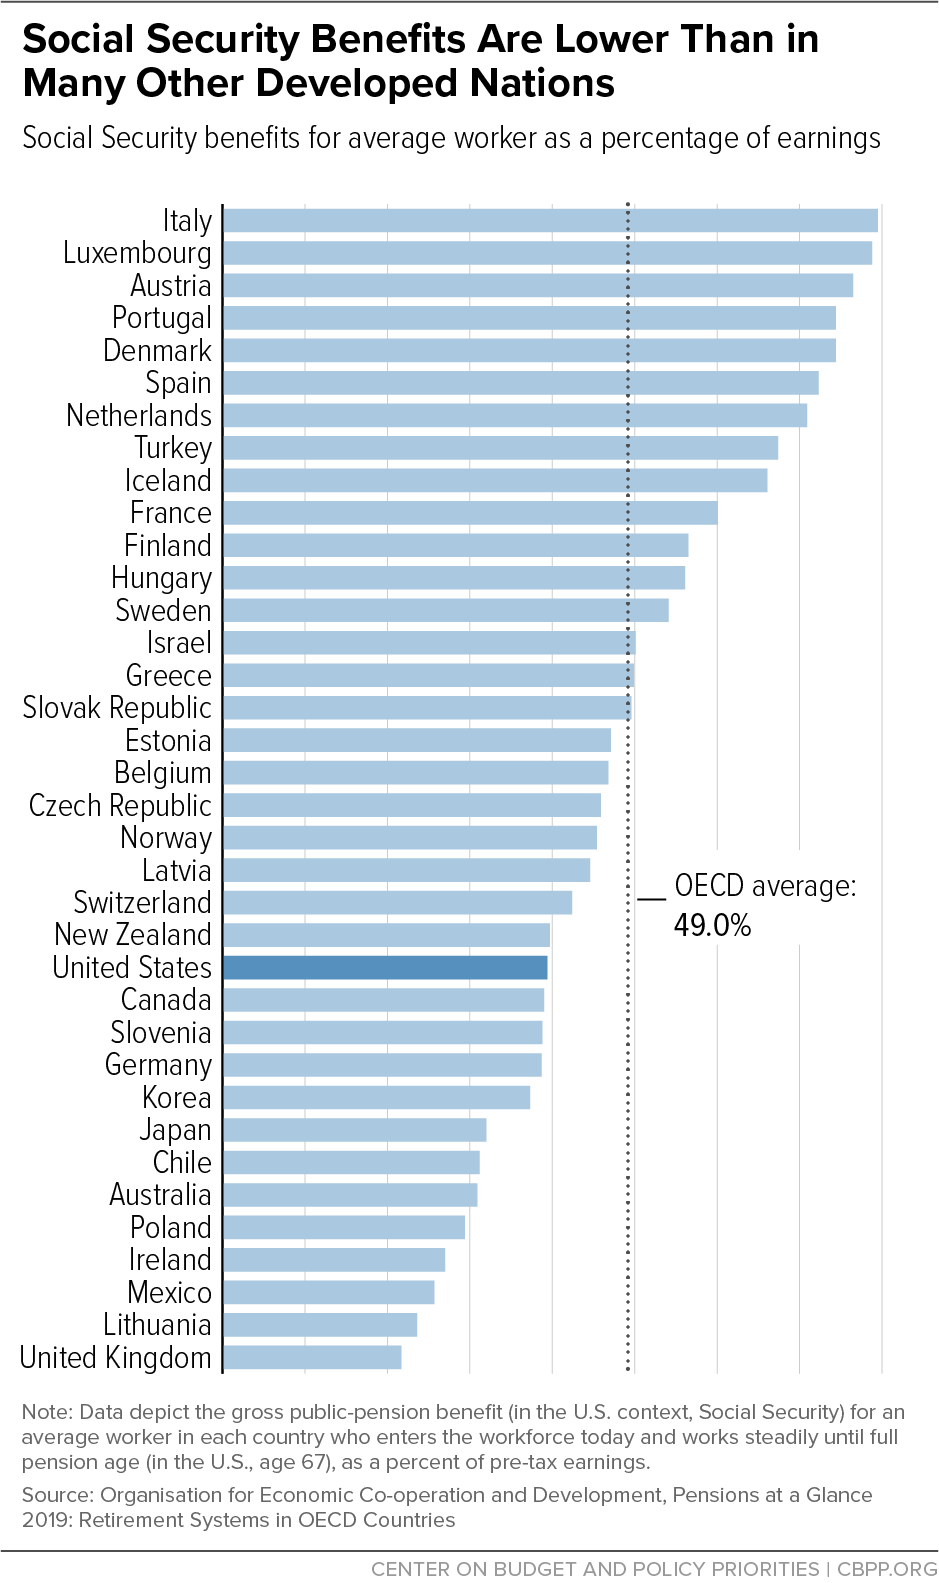 Social Security Benefits are Lower Than in Many Other Developed Nations